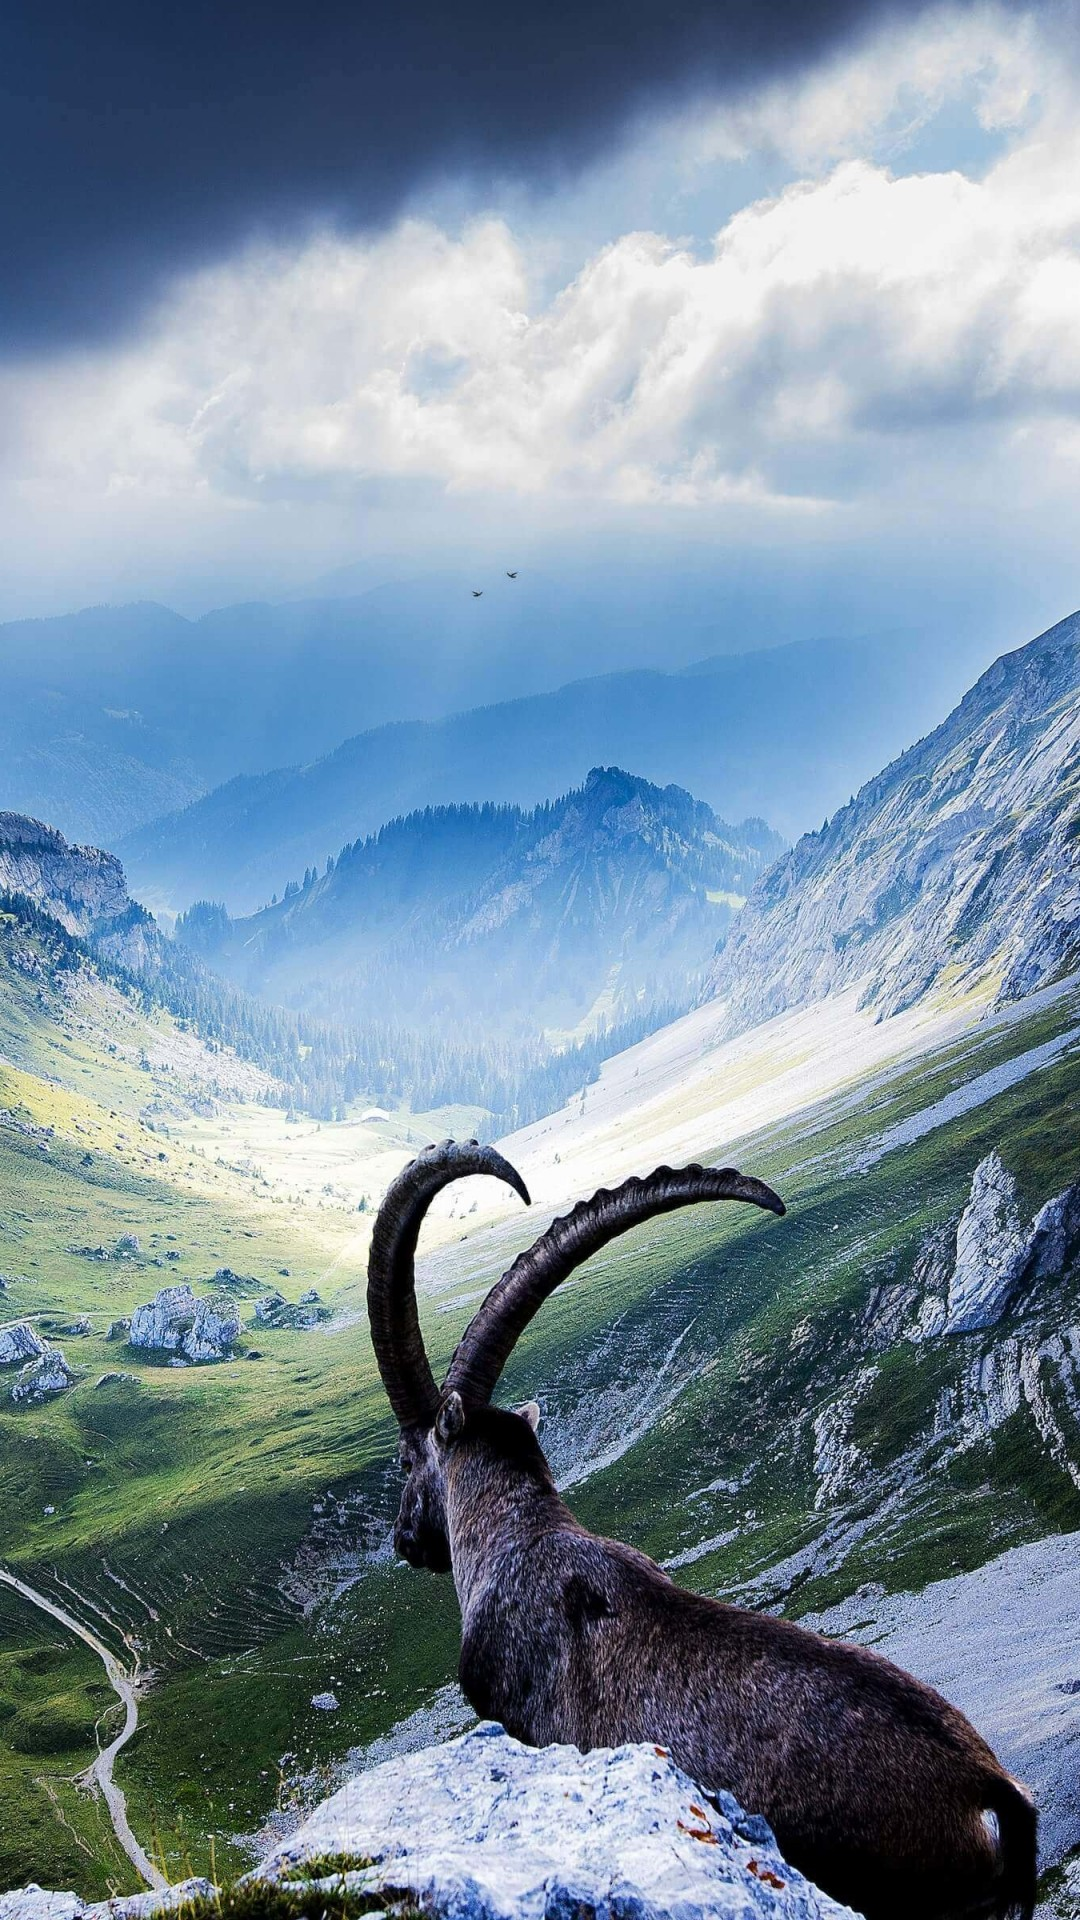 Goat at Pilatus, Switzerland Wallpaper for SONY Xperia Z1